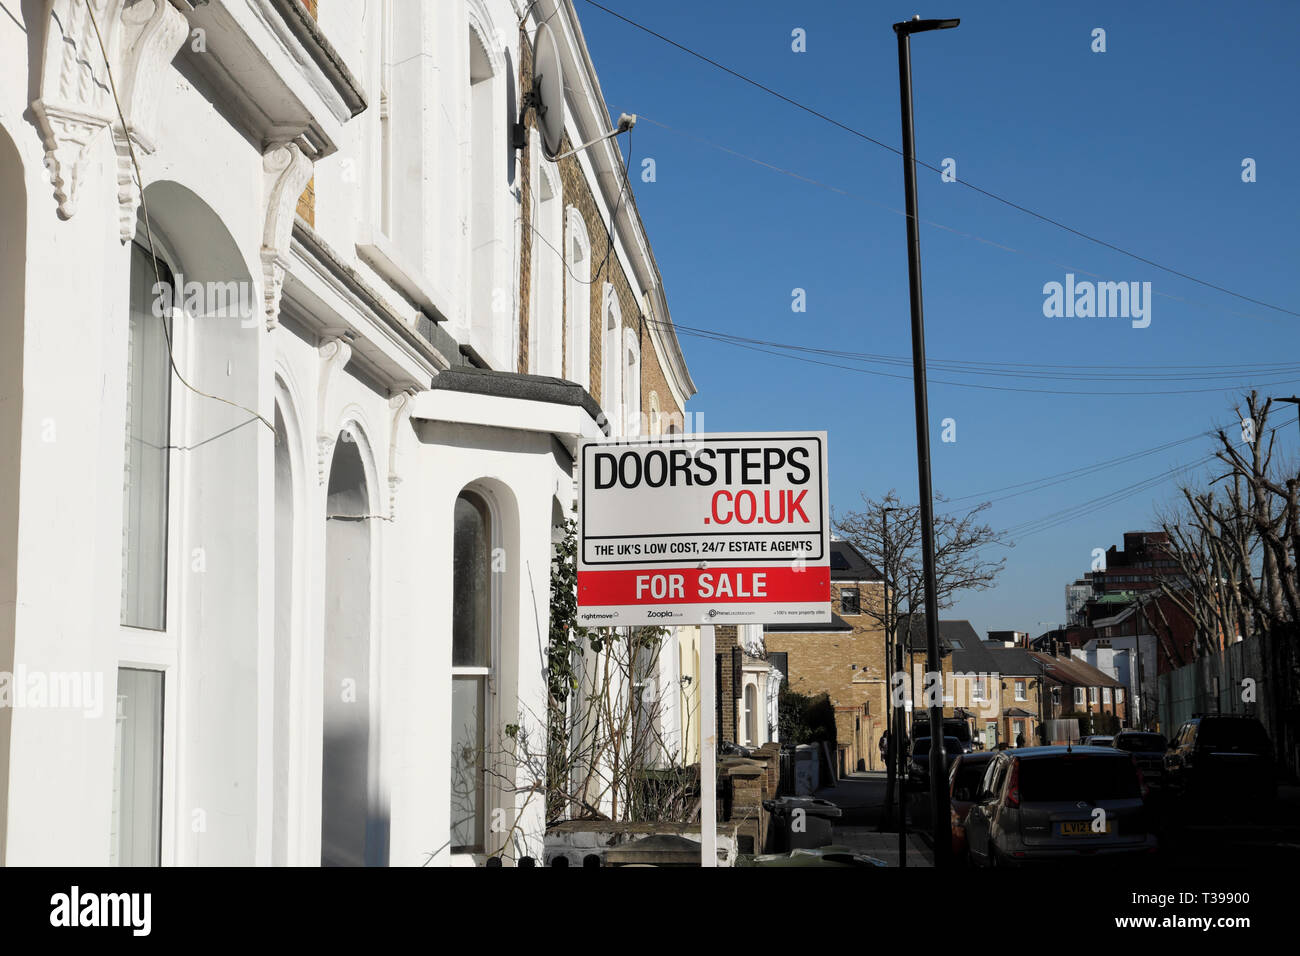 For sale sign outside a house in a row of terraced houses on Pulross Road in Brixton, South London SW9 England UK   KATHY DEWITT Stock Photo